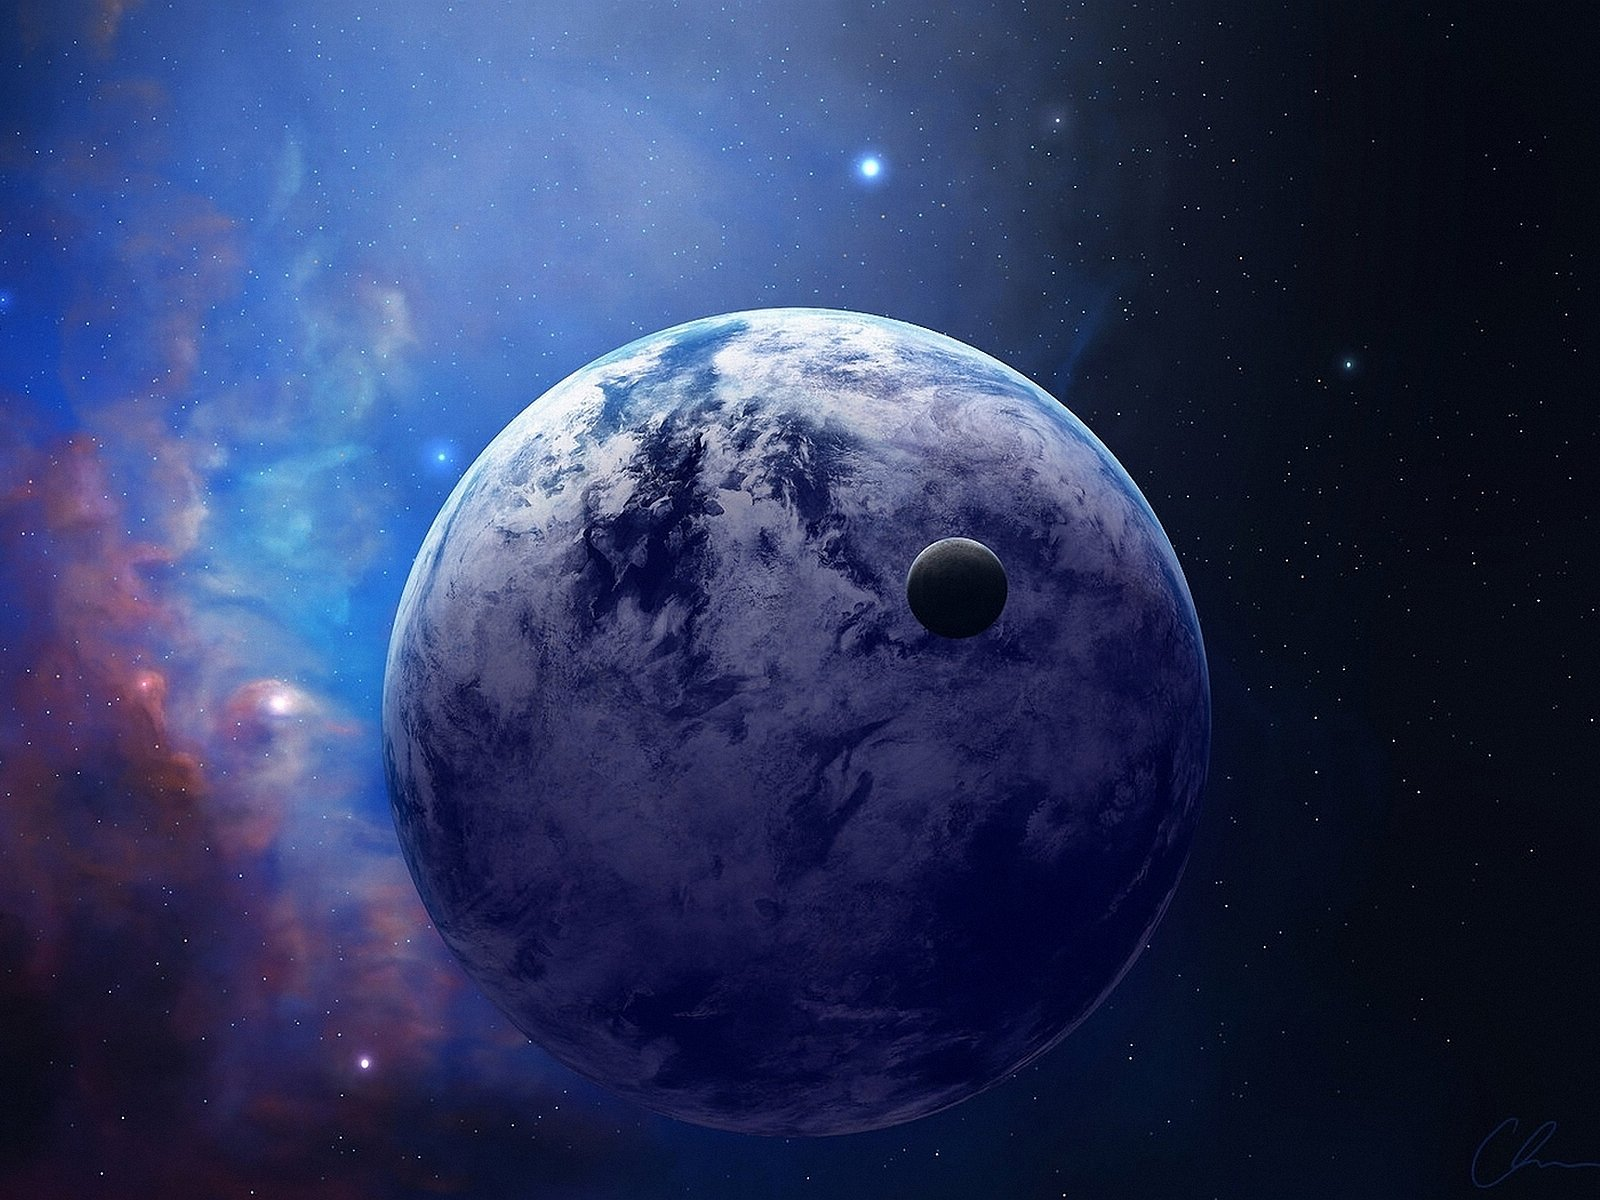 Cool Planet wallpaper   ForWallpapercom 1600x1200